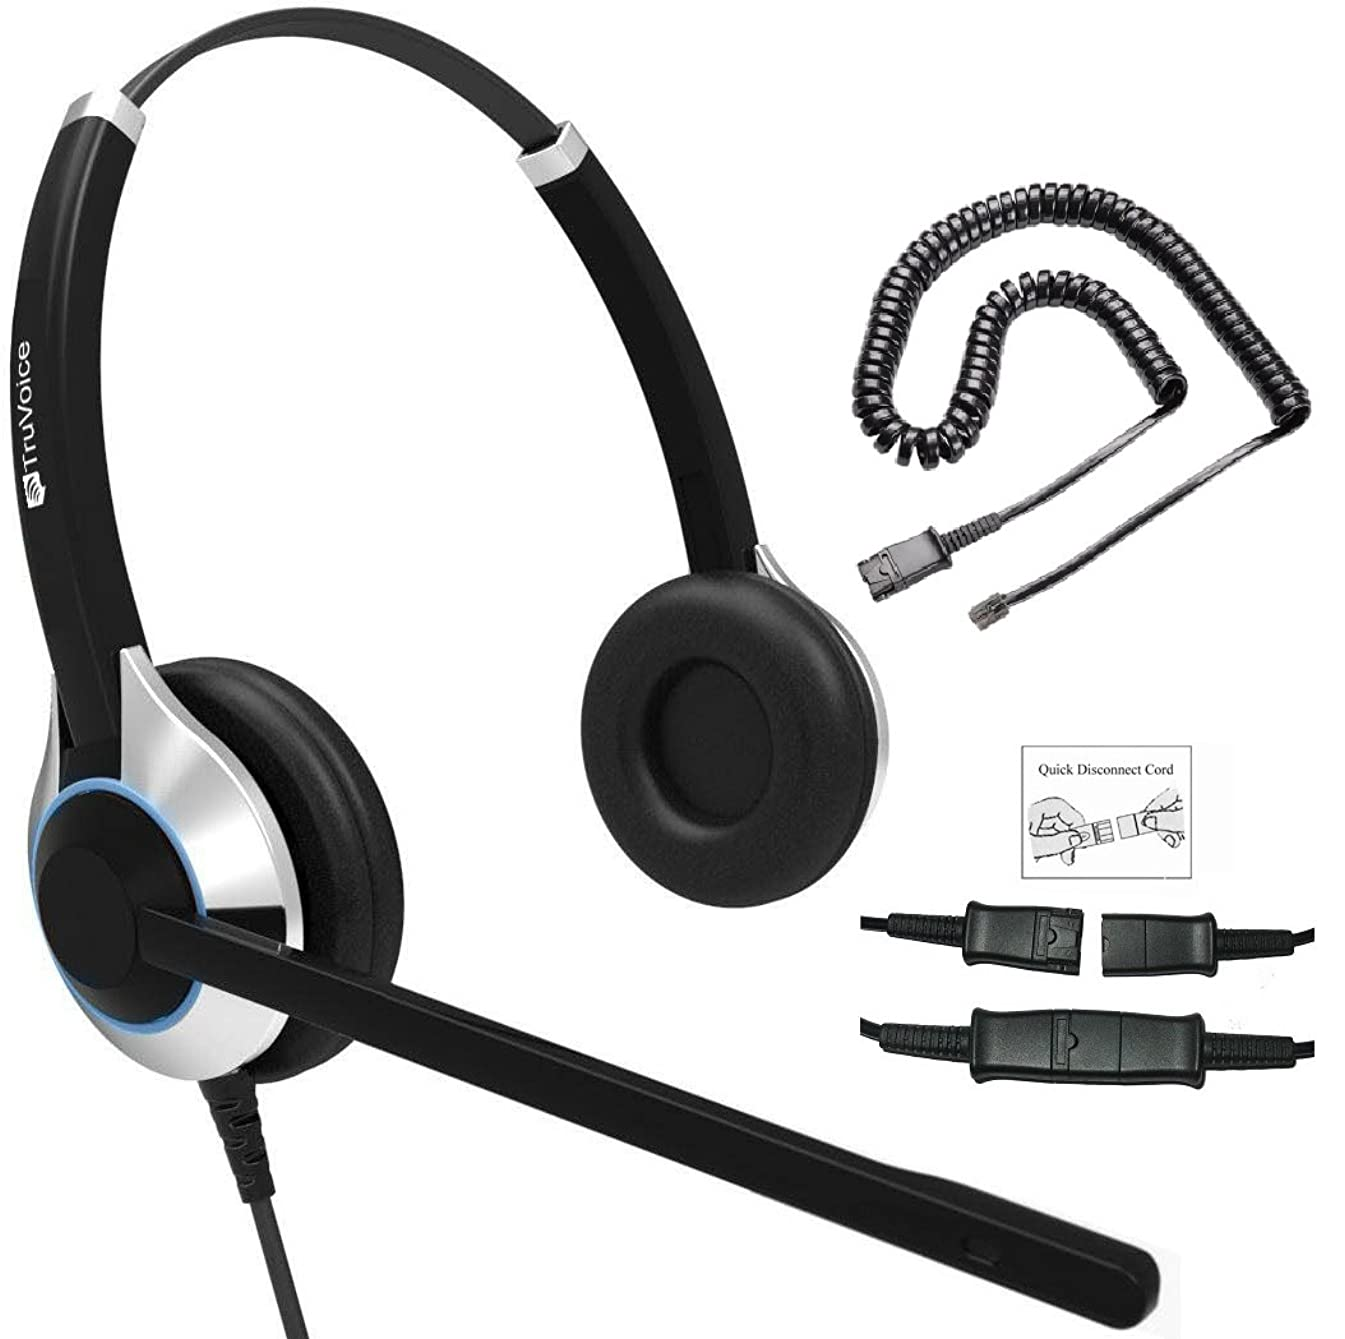 Deluxe Double Ear Noise Canceling Headset for Call Center/Office & Cable for All Cisco 6000, 7800 and 8000 Series Phones and Also Models 7931 7940 7941 7942 7945 7960 7961 7962 7965 7970 7975